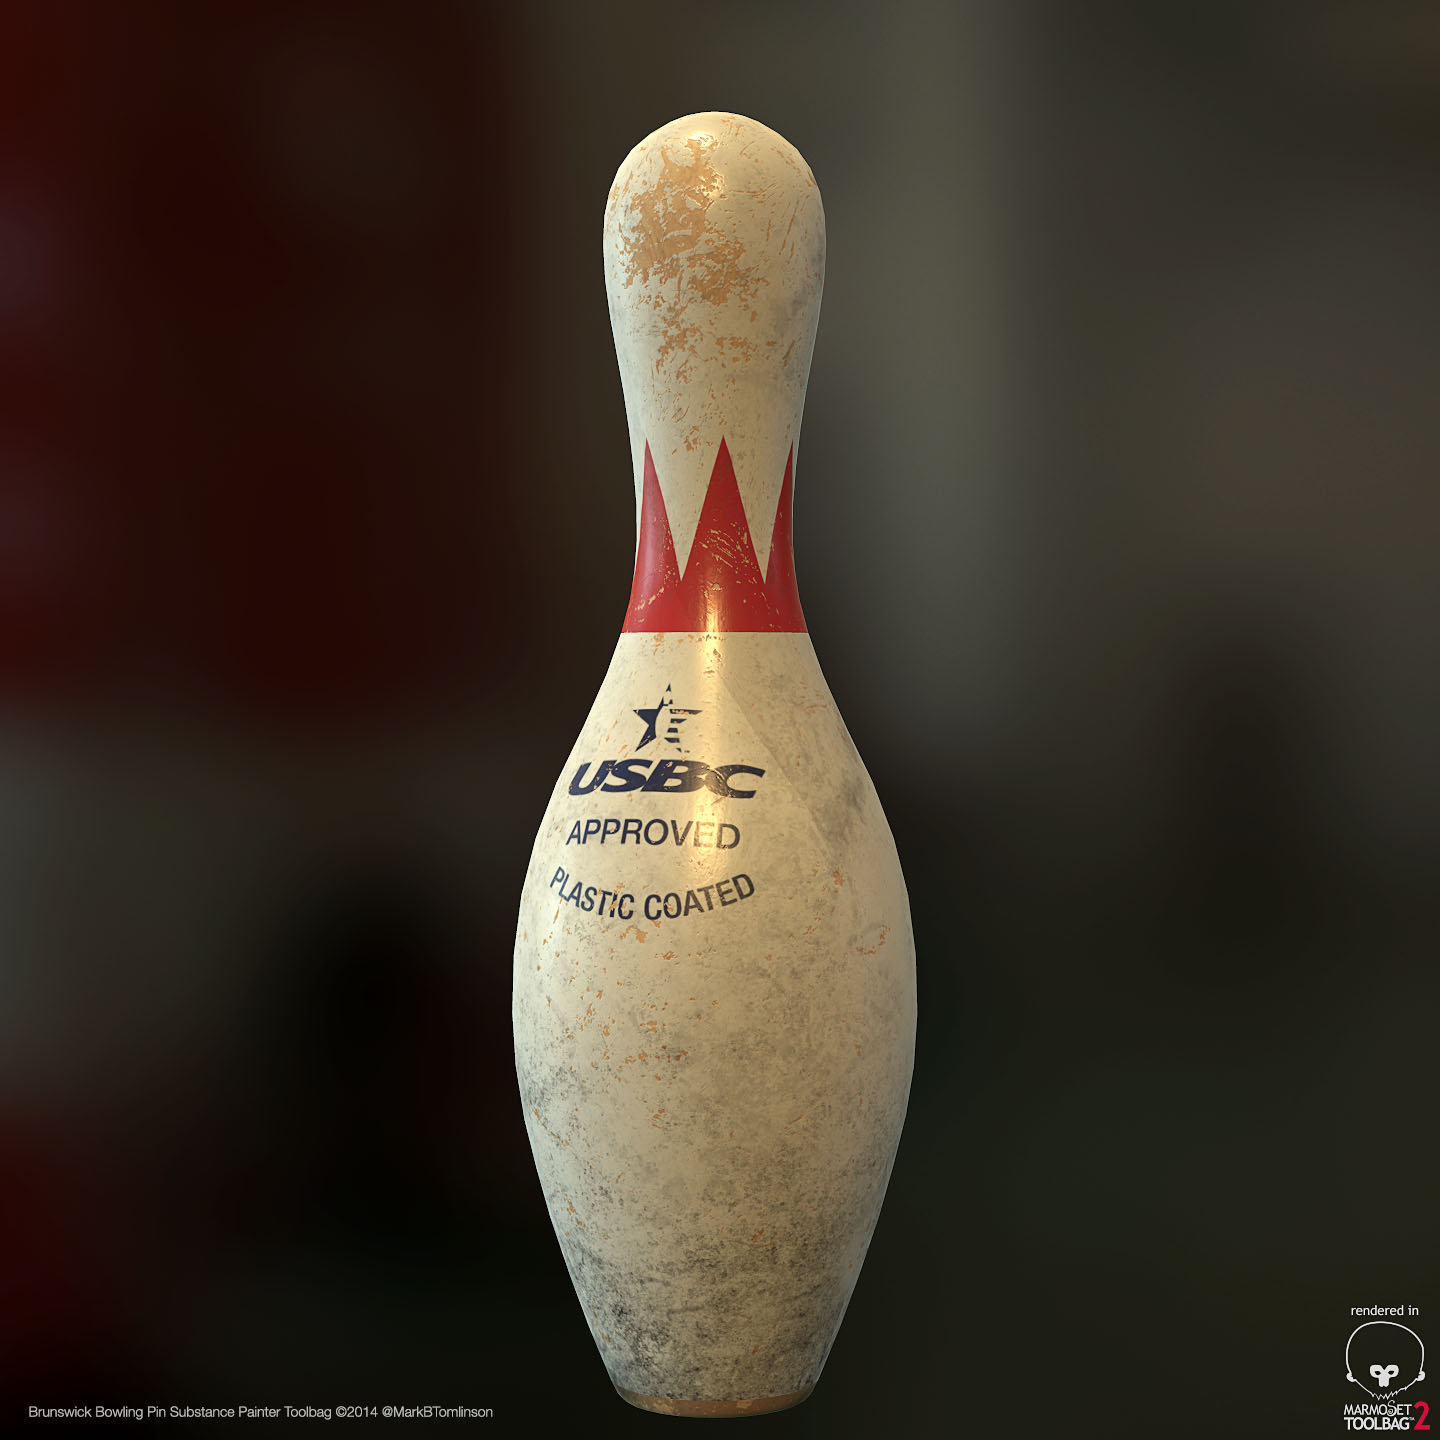 Brunswick Crown Bowling Pin